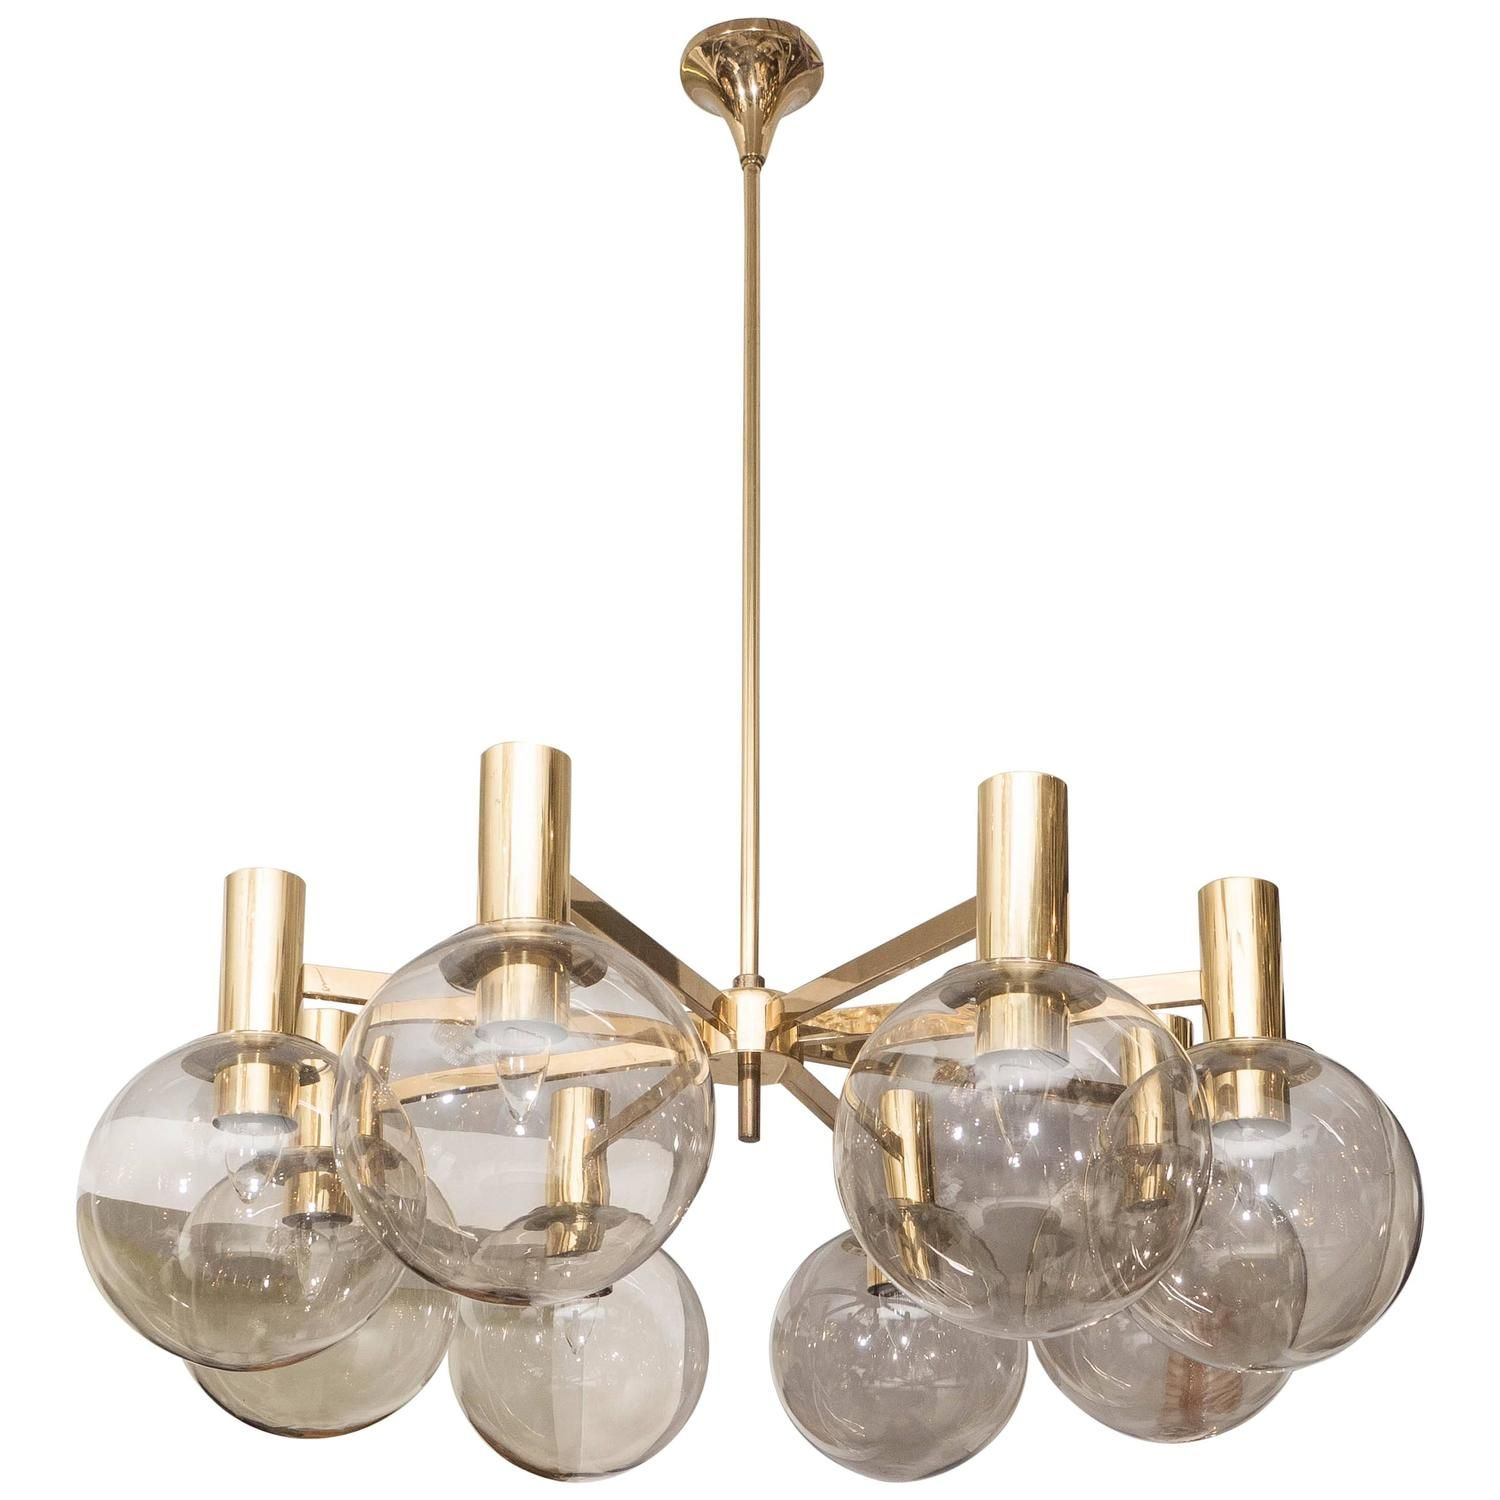 1970s Hans Agne Jakobsson Smoked Globes And Brass Light Fixture Brass Light Fixture Light Fixtures Brass Lighting